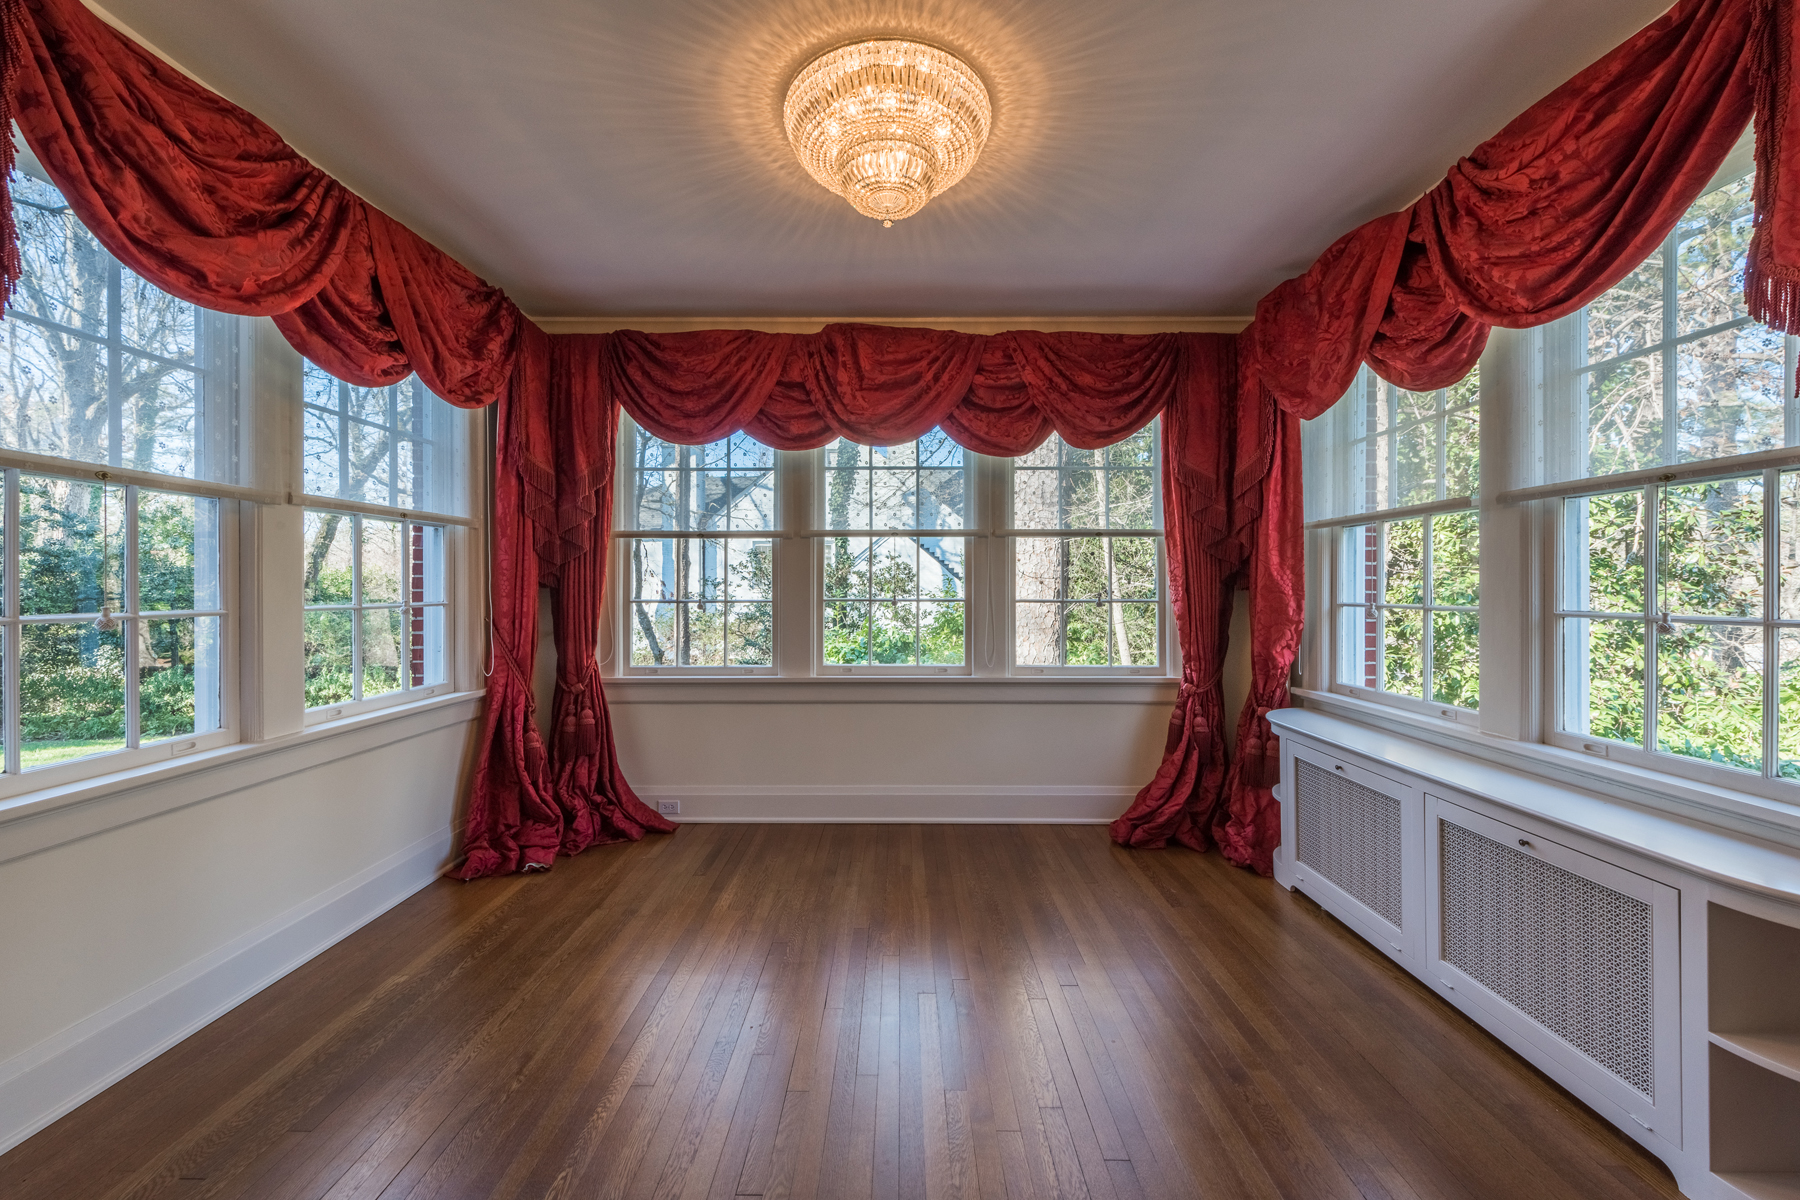 Additional photo for property listing at Pristine Historic Brookhaven Classic 1055 Stovall Blvd Atlanta, Georgia 30319 United States